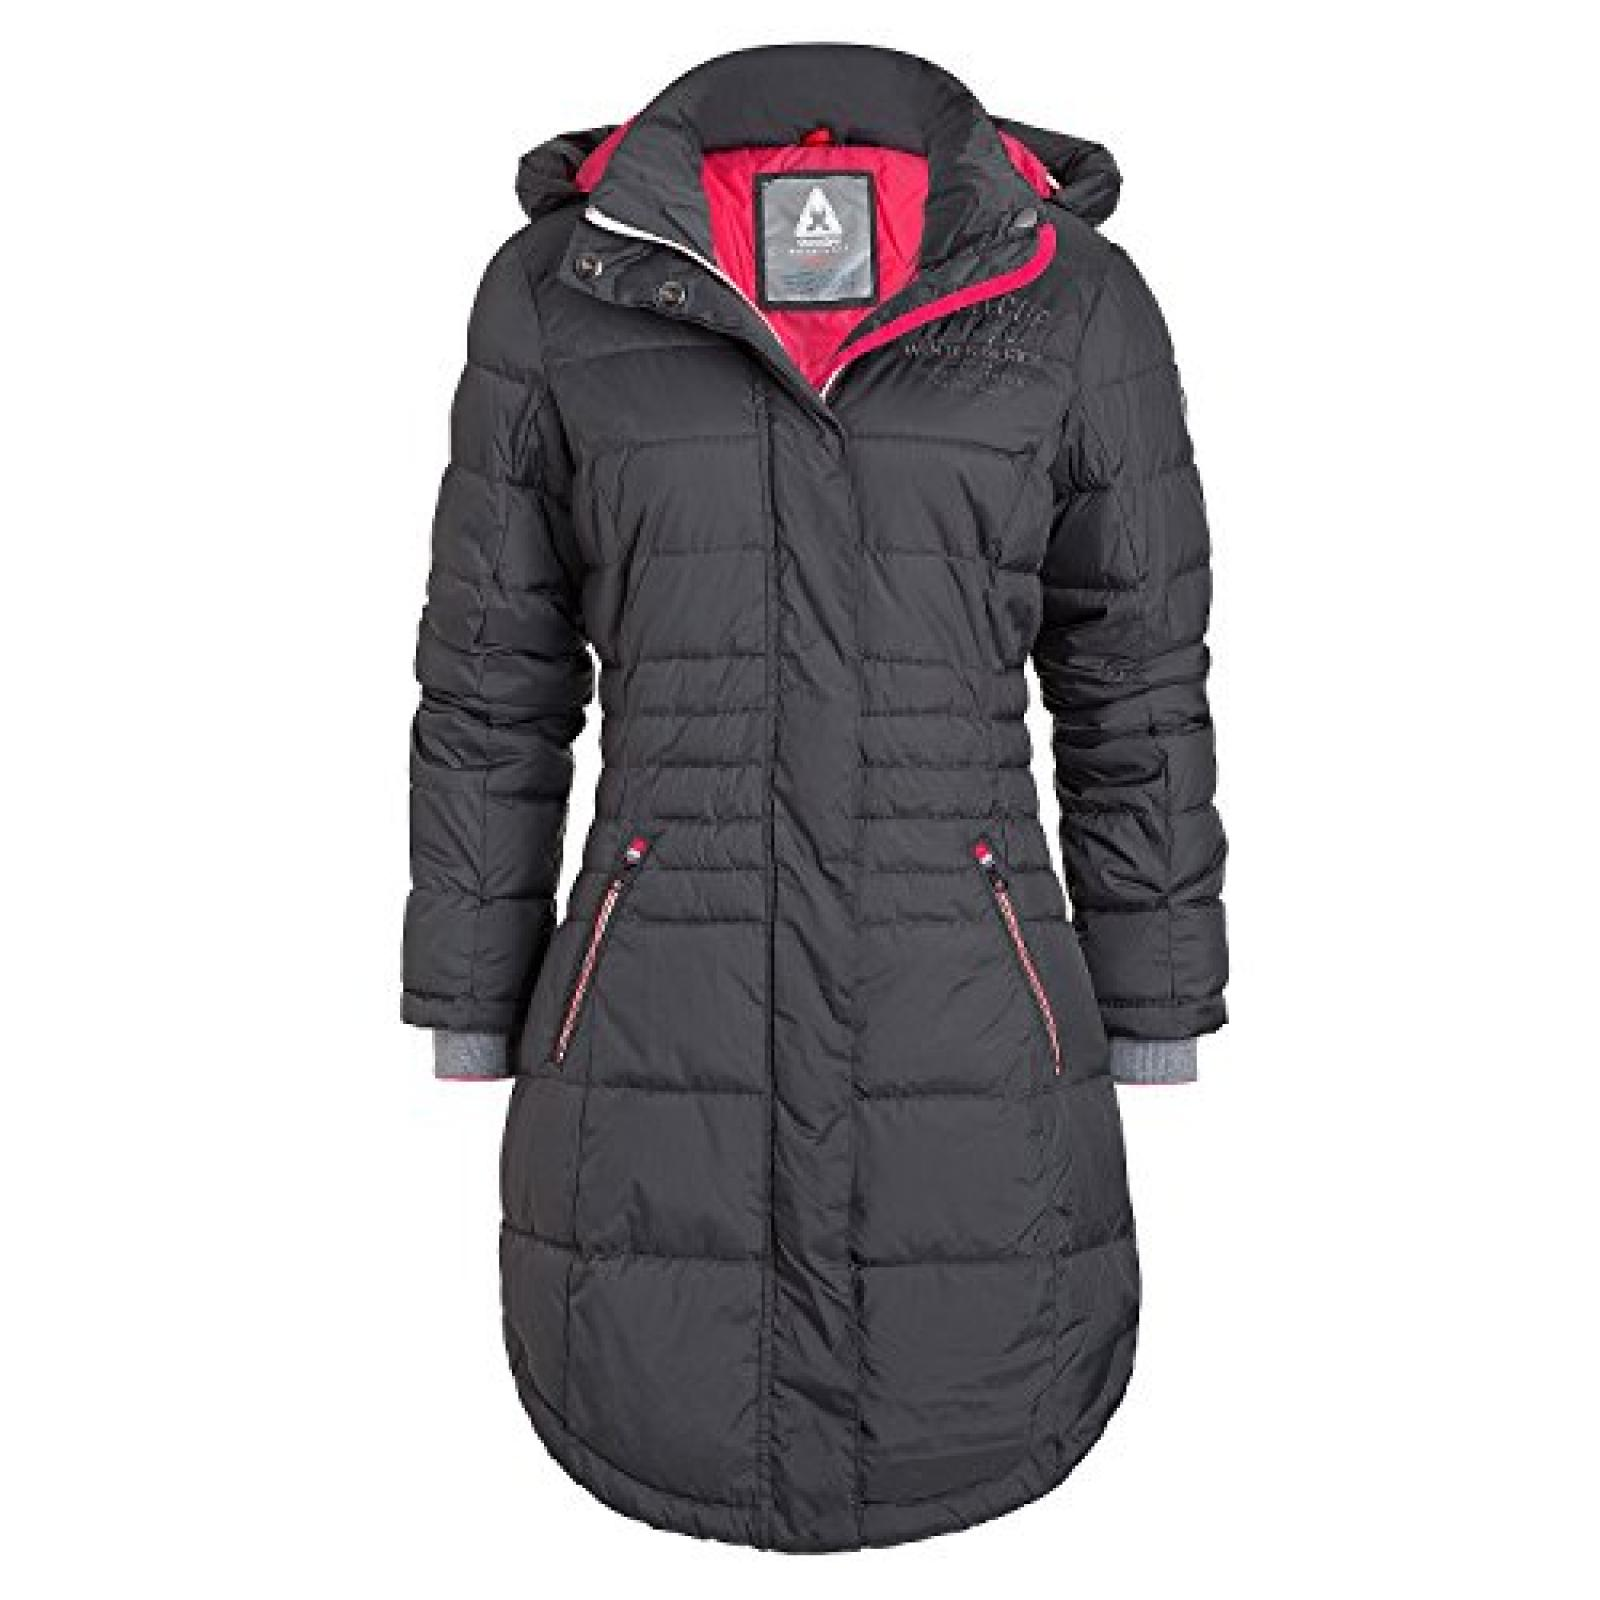 Gaastra Damenjacke Hickley Point C Gr. XS 250 36112742 Grau 102 Damen Jacke